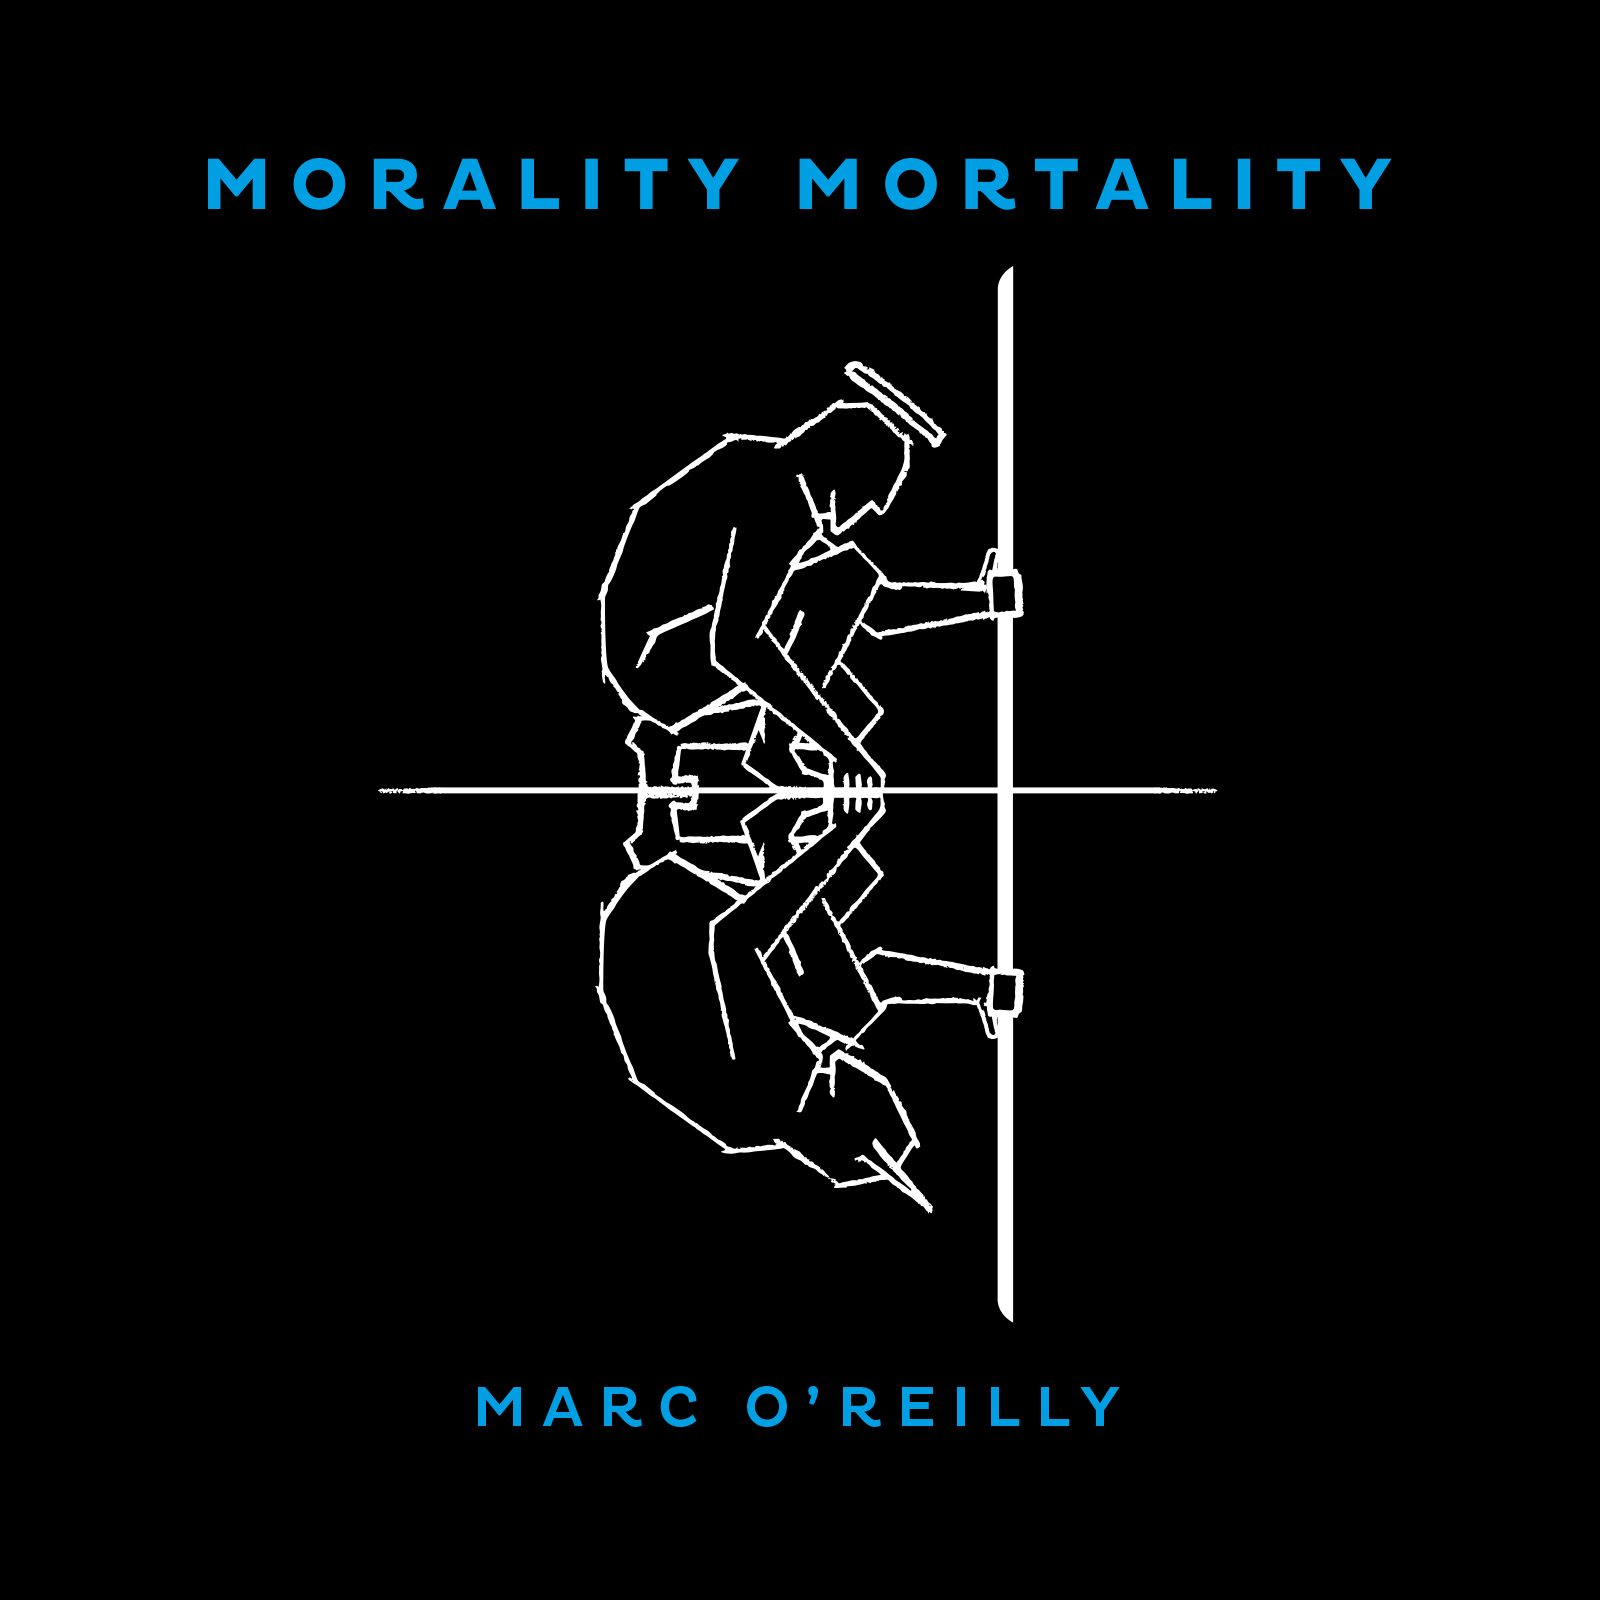 Morality Mortality - Marc O'Reilly